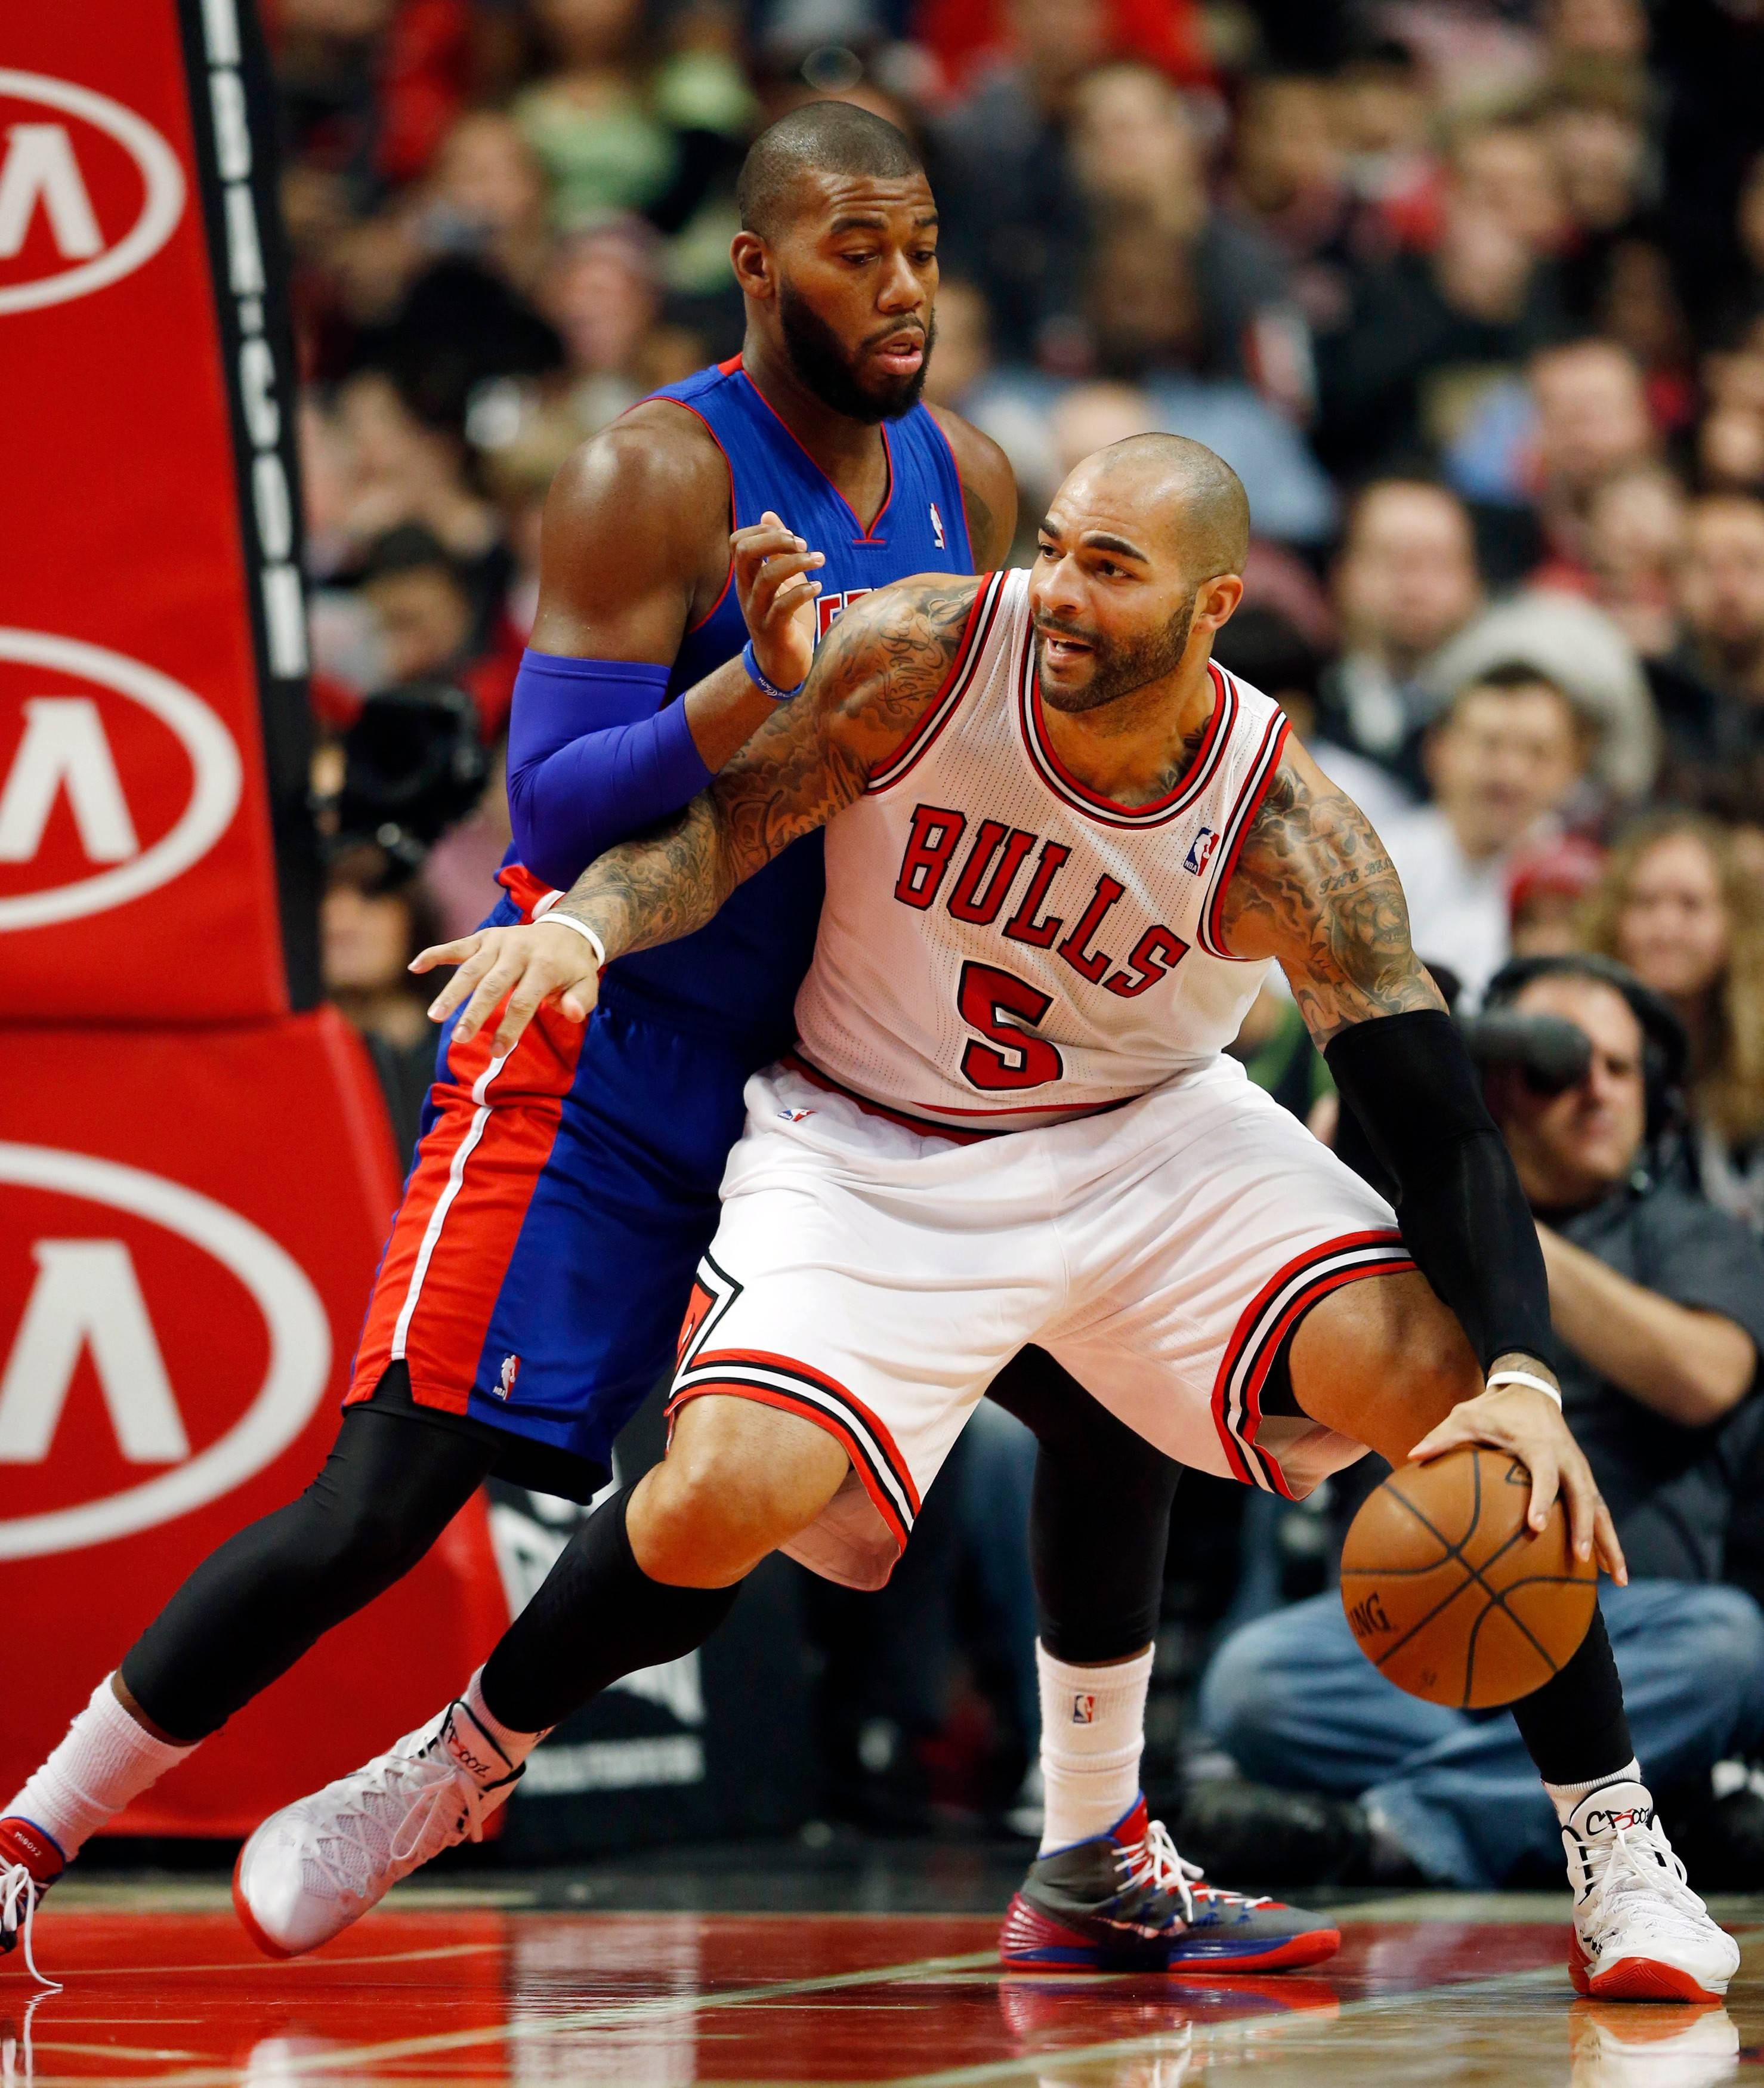 Former Chicago Bulls forward Carlos Boozer (5) will play for the Los Angeles Lakers next season, according to several reports.